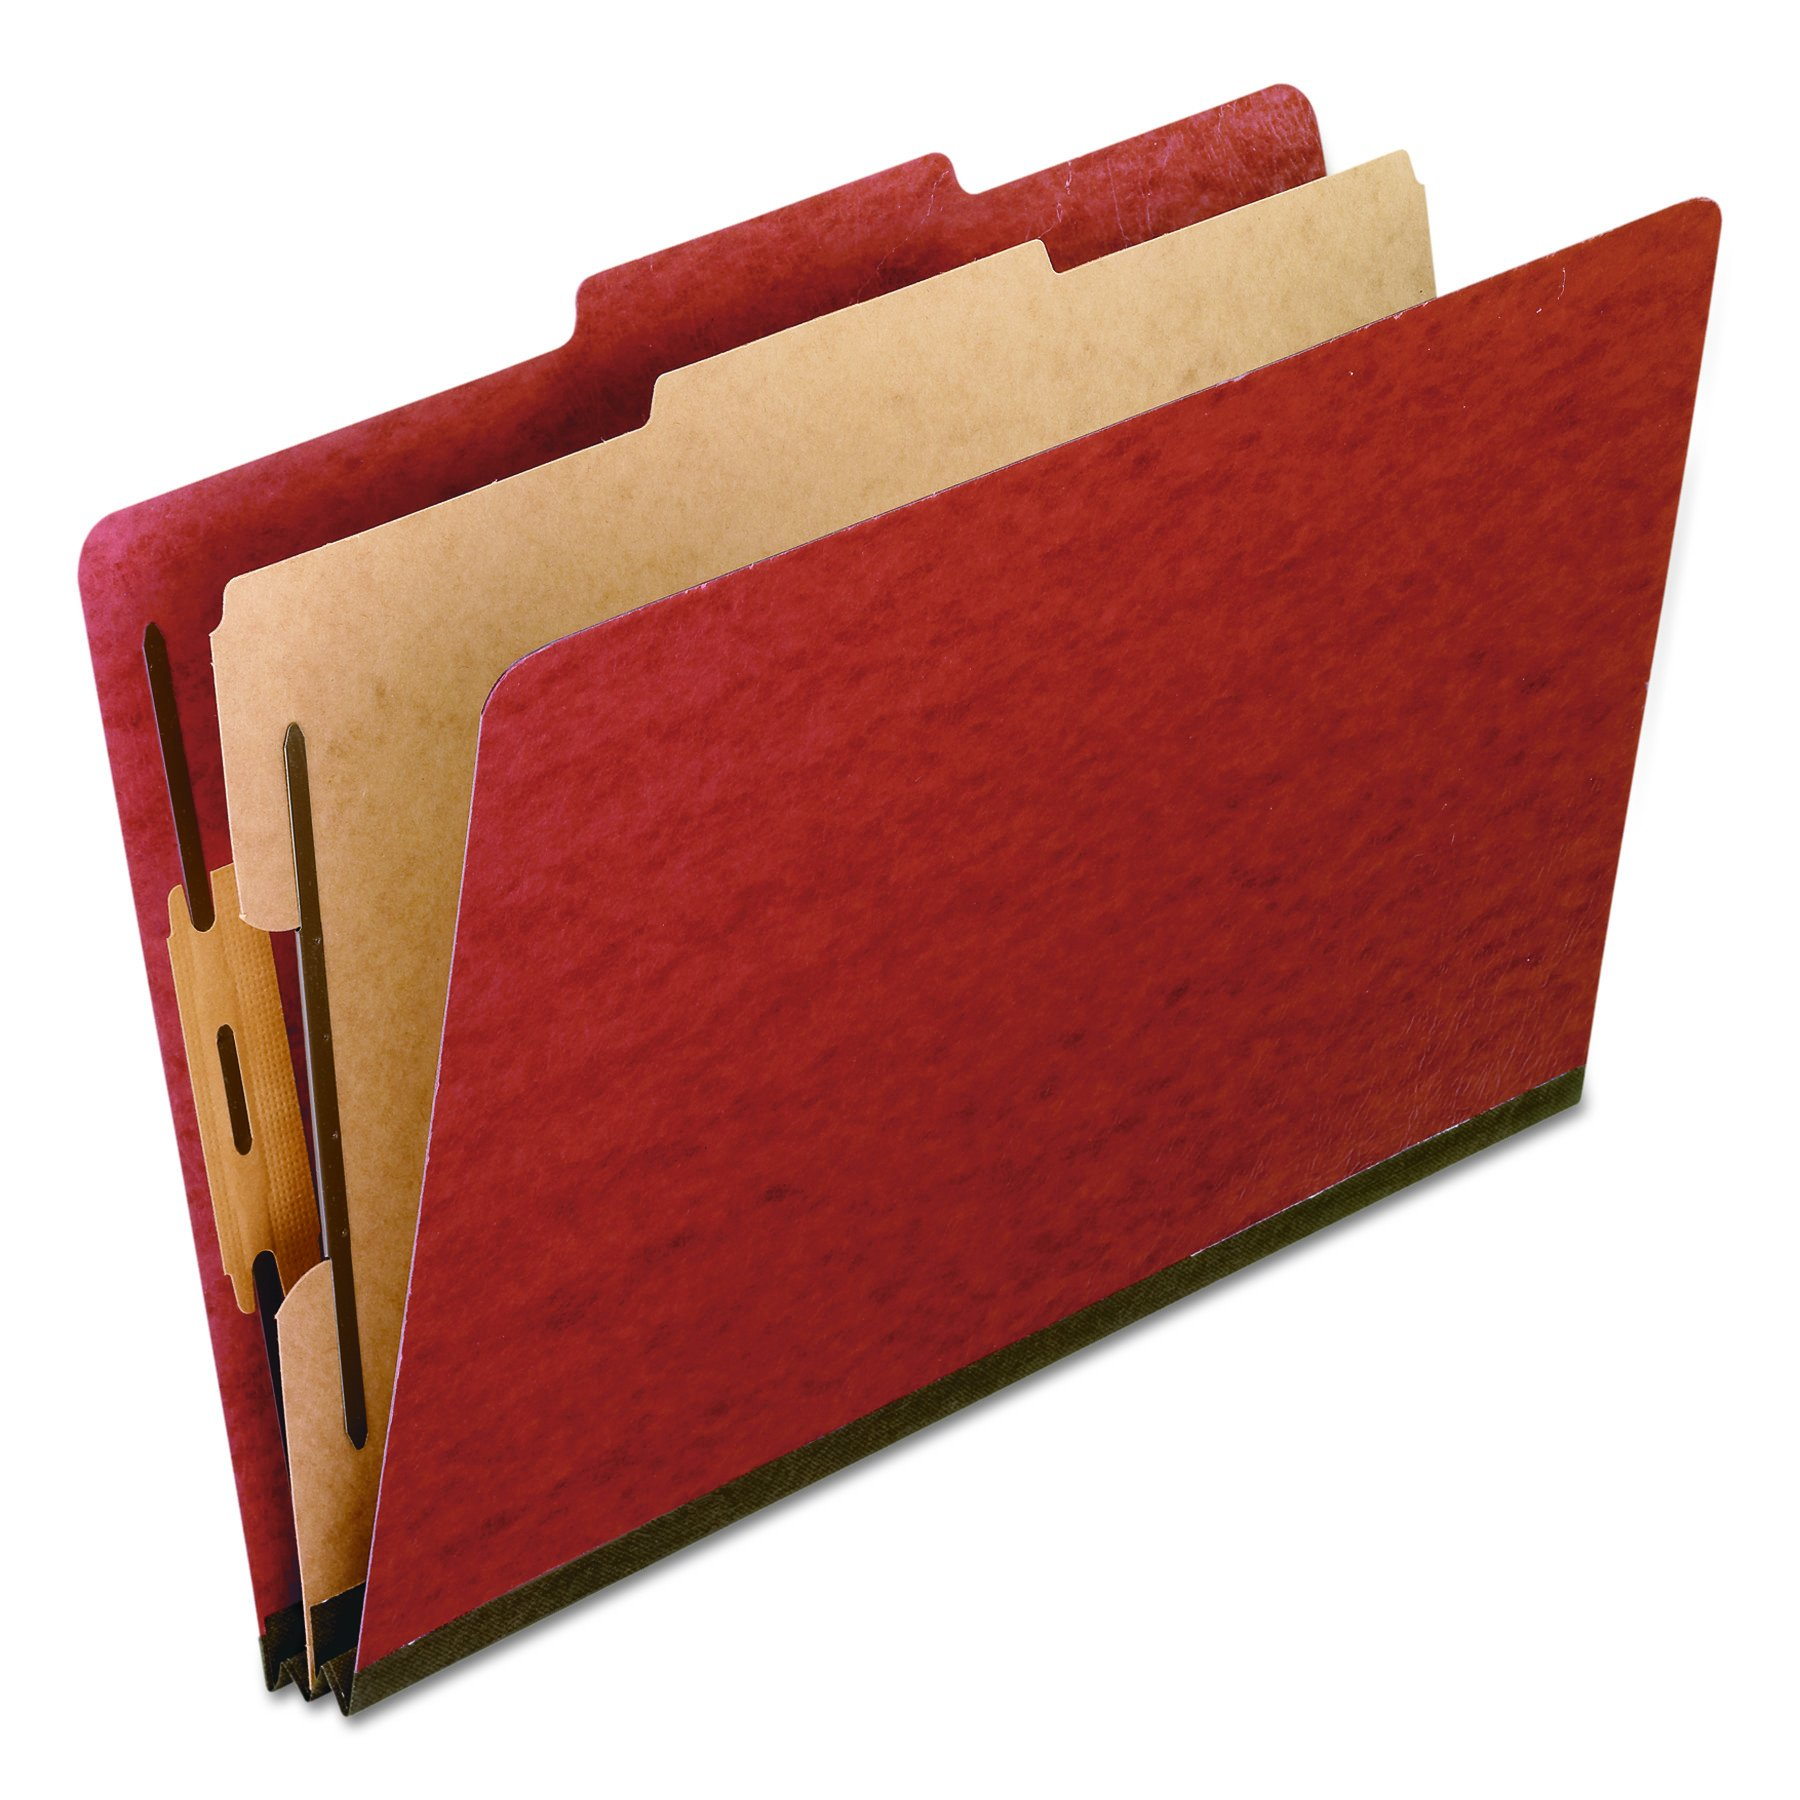 Pendaflex 2157R Four-Section Pressboard Folders, Legal, 2/5 Tab, Red (Box of 10) by Pendaflex